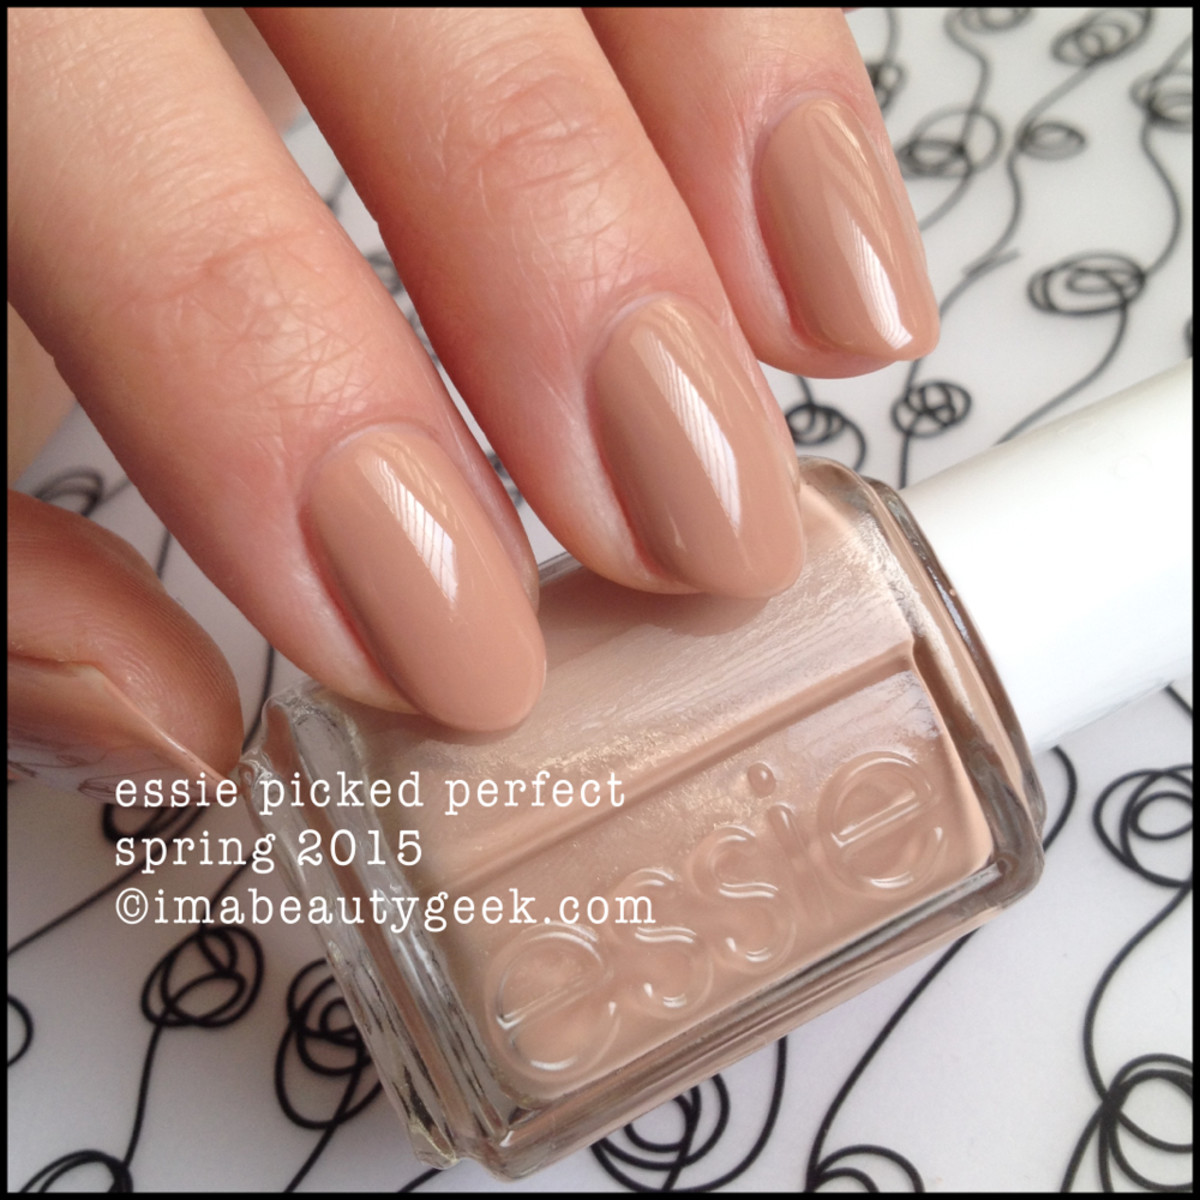 Essie Picked Perfect Spring 2015